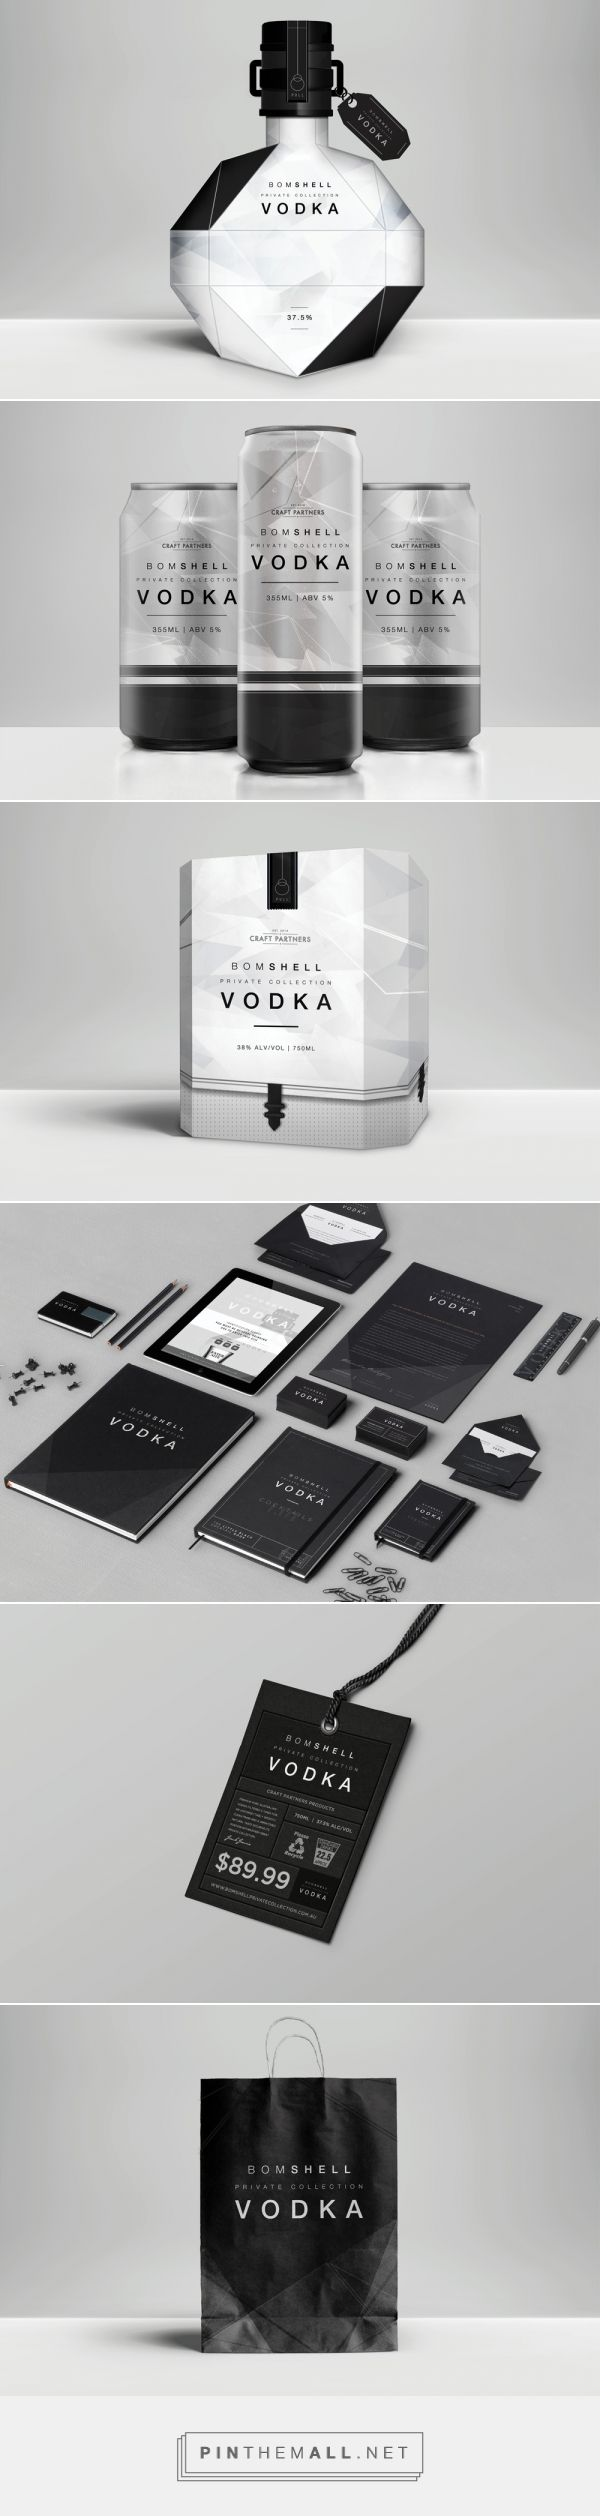 Bomshell Vodka by Scott Francis Murray curated by Packaging Diva PD. Private collection packaging.